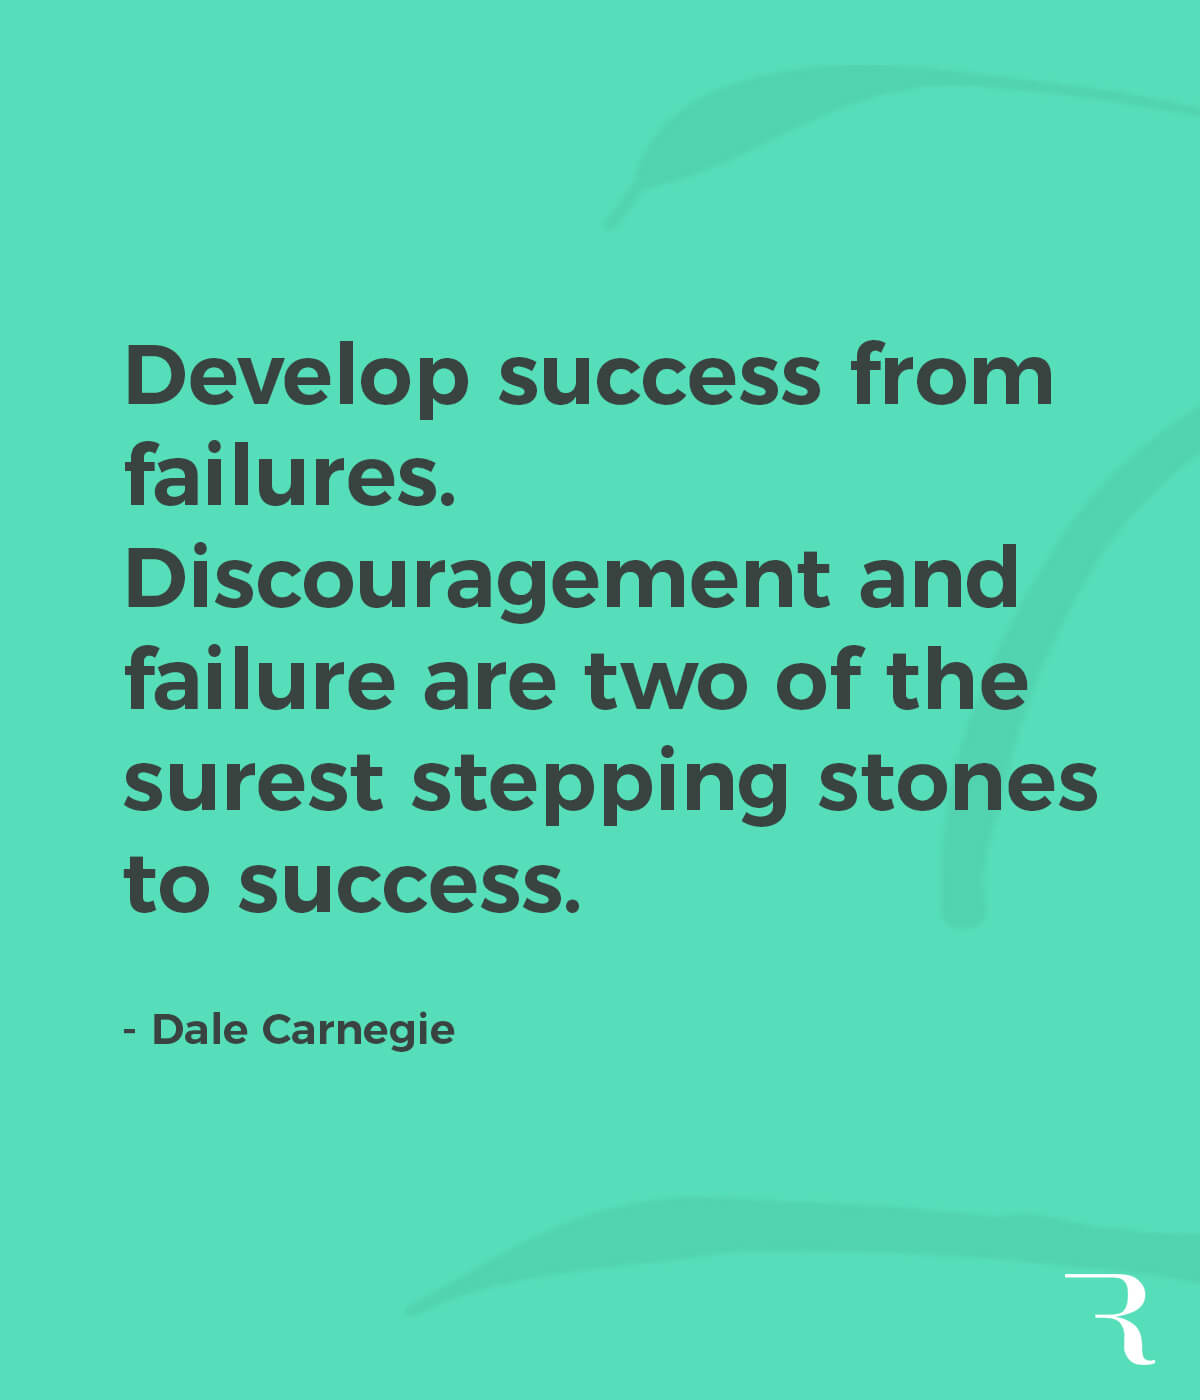 """Motivational Quotes: """"Discouragement and failure are two of the surest stepping stones to success."""" 112 Motivational Quotes to Be a Better Entrepreneur"""